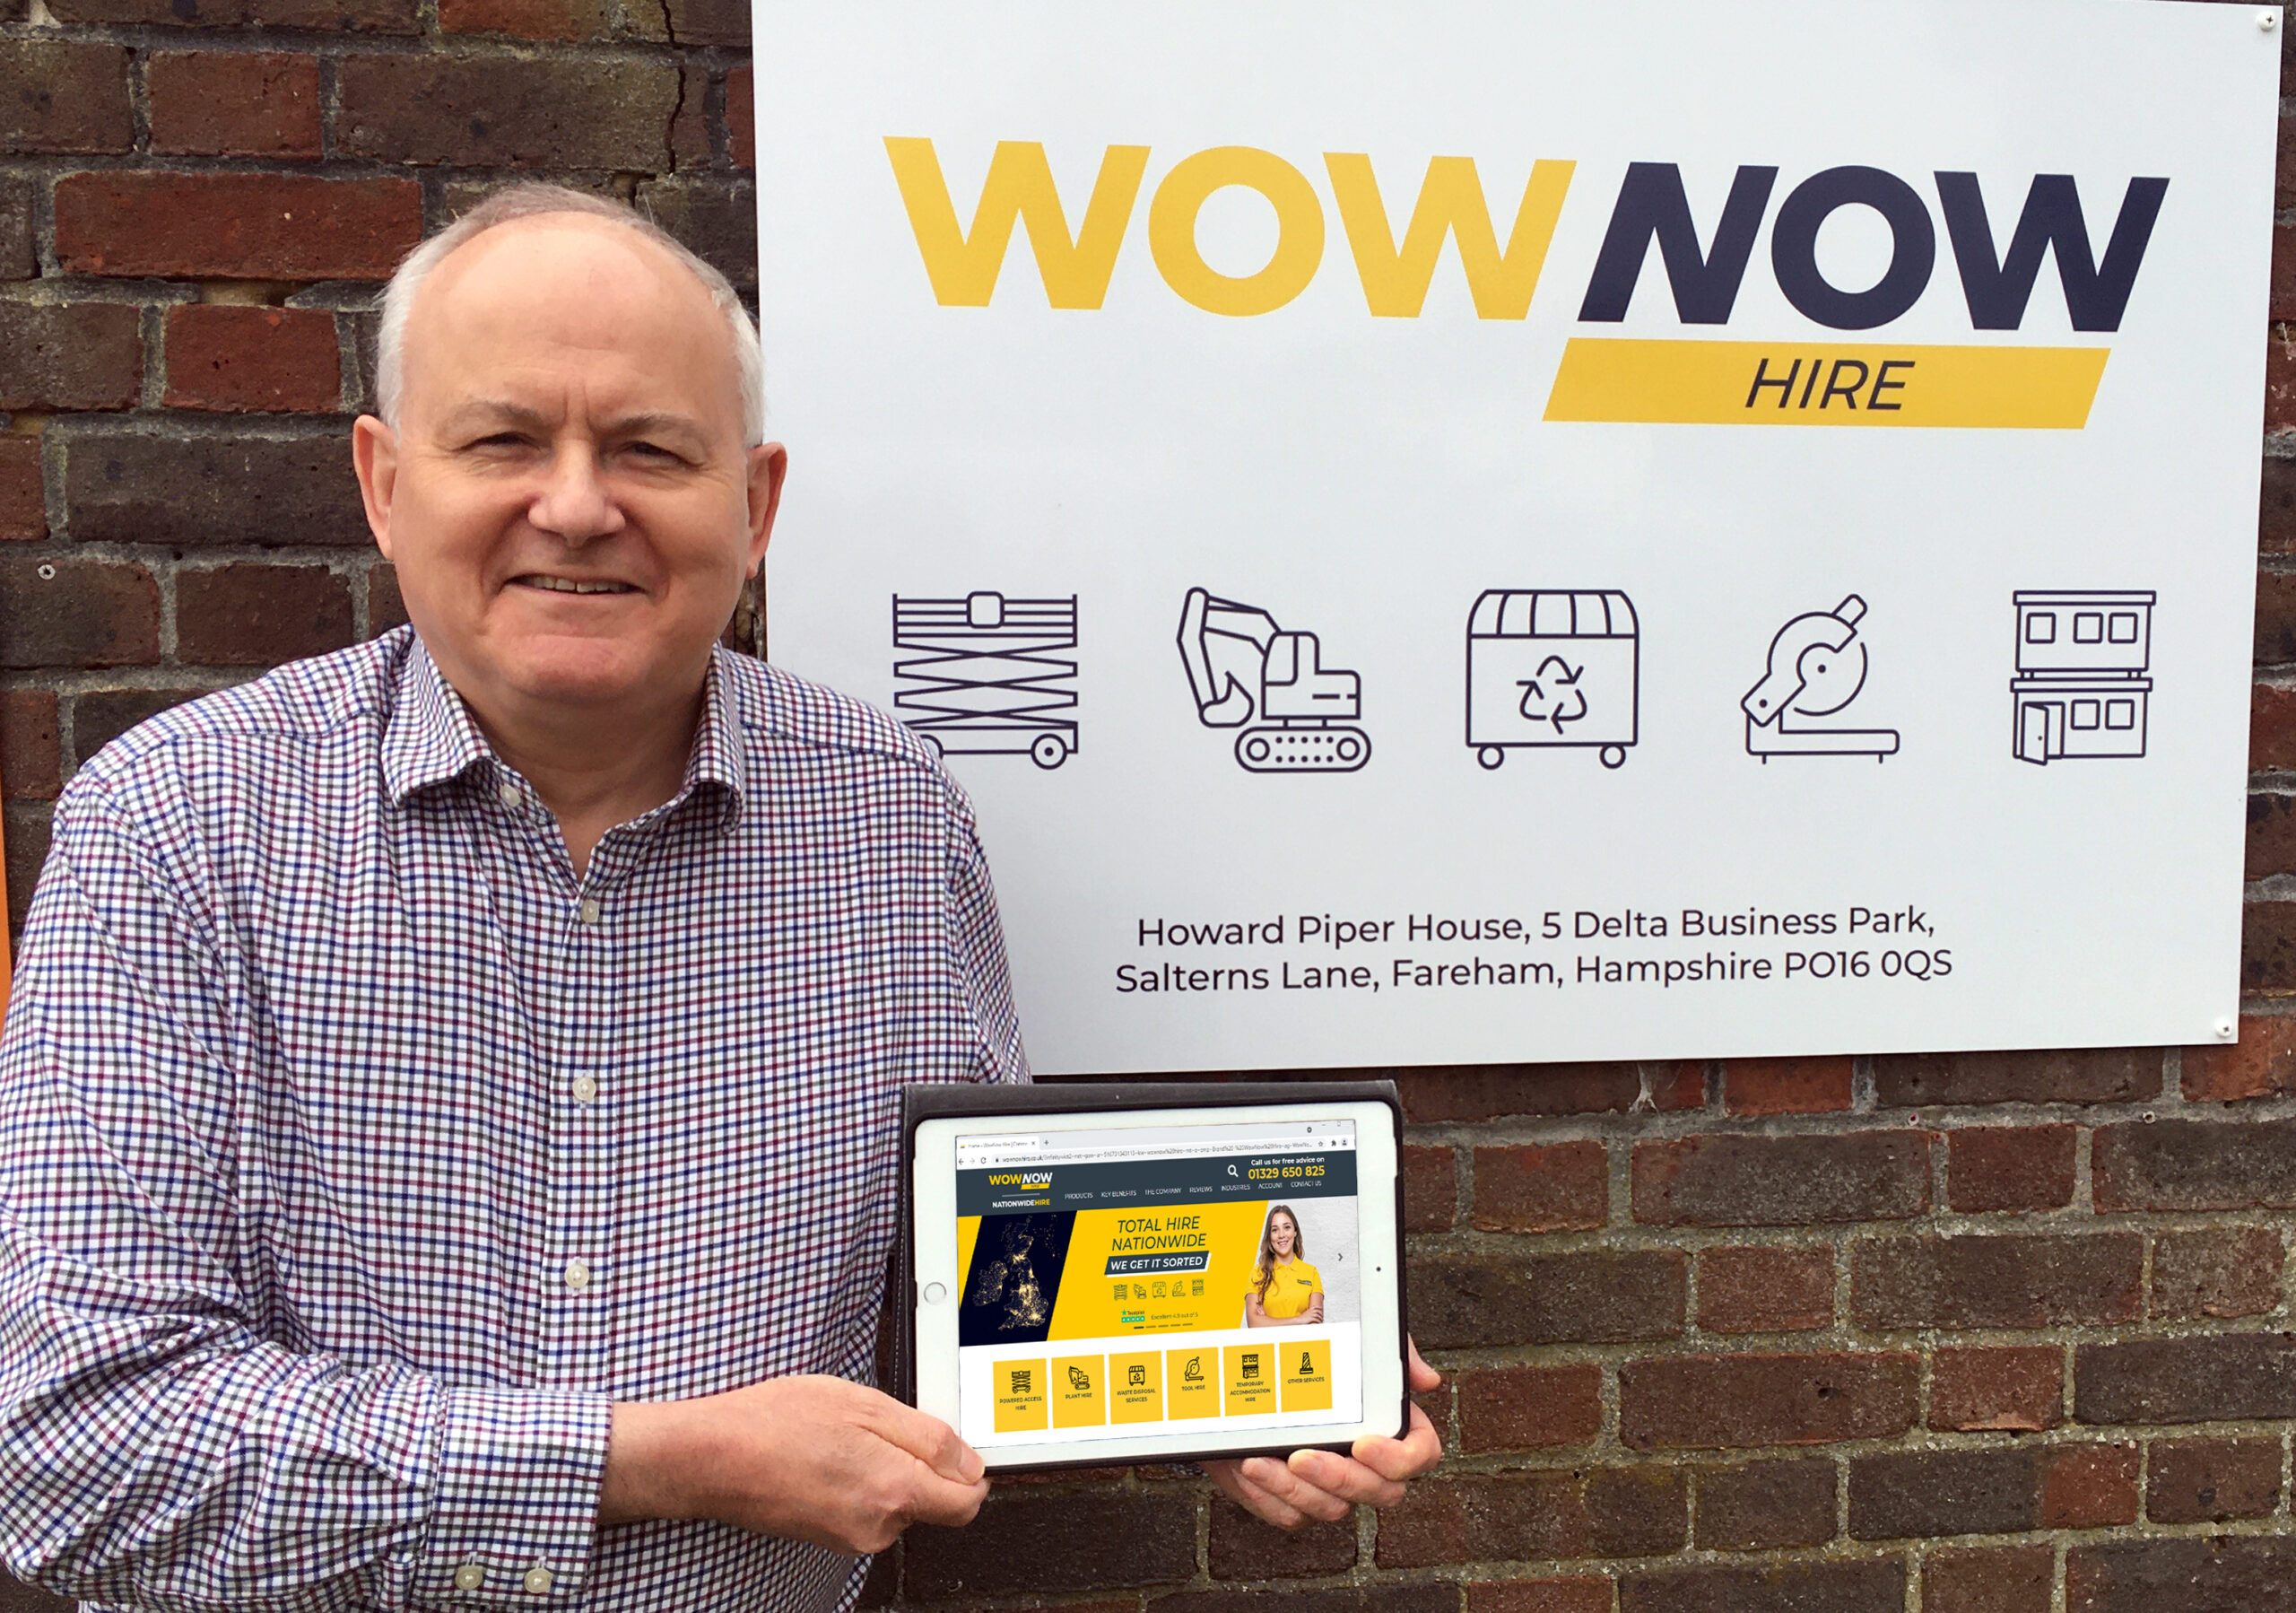 Construction equipment hire business aims to Wow with new name